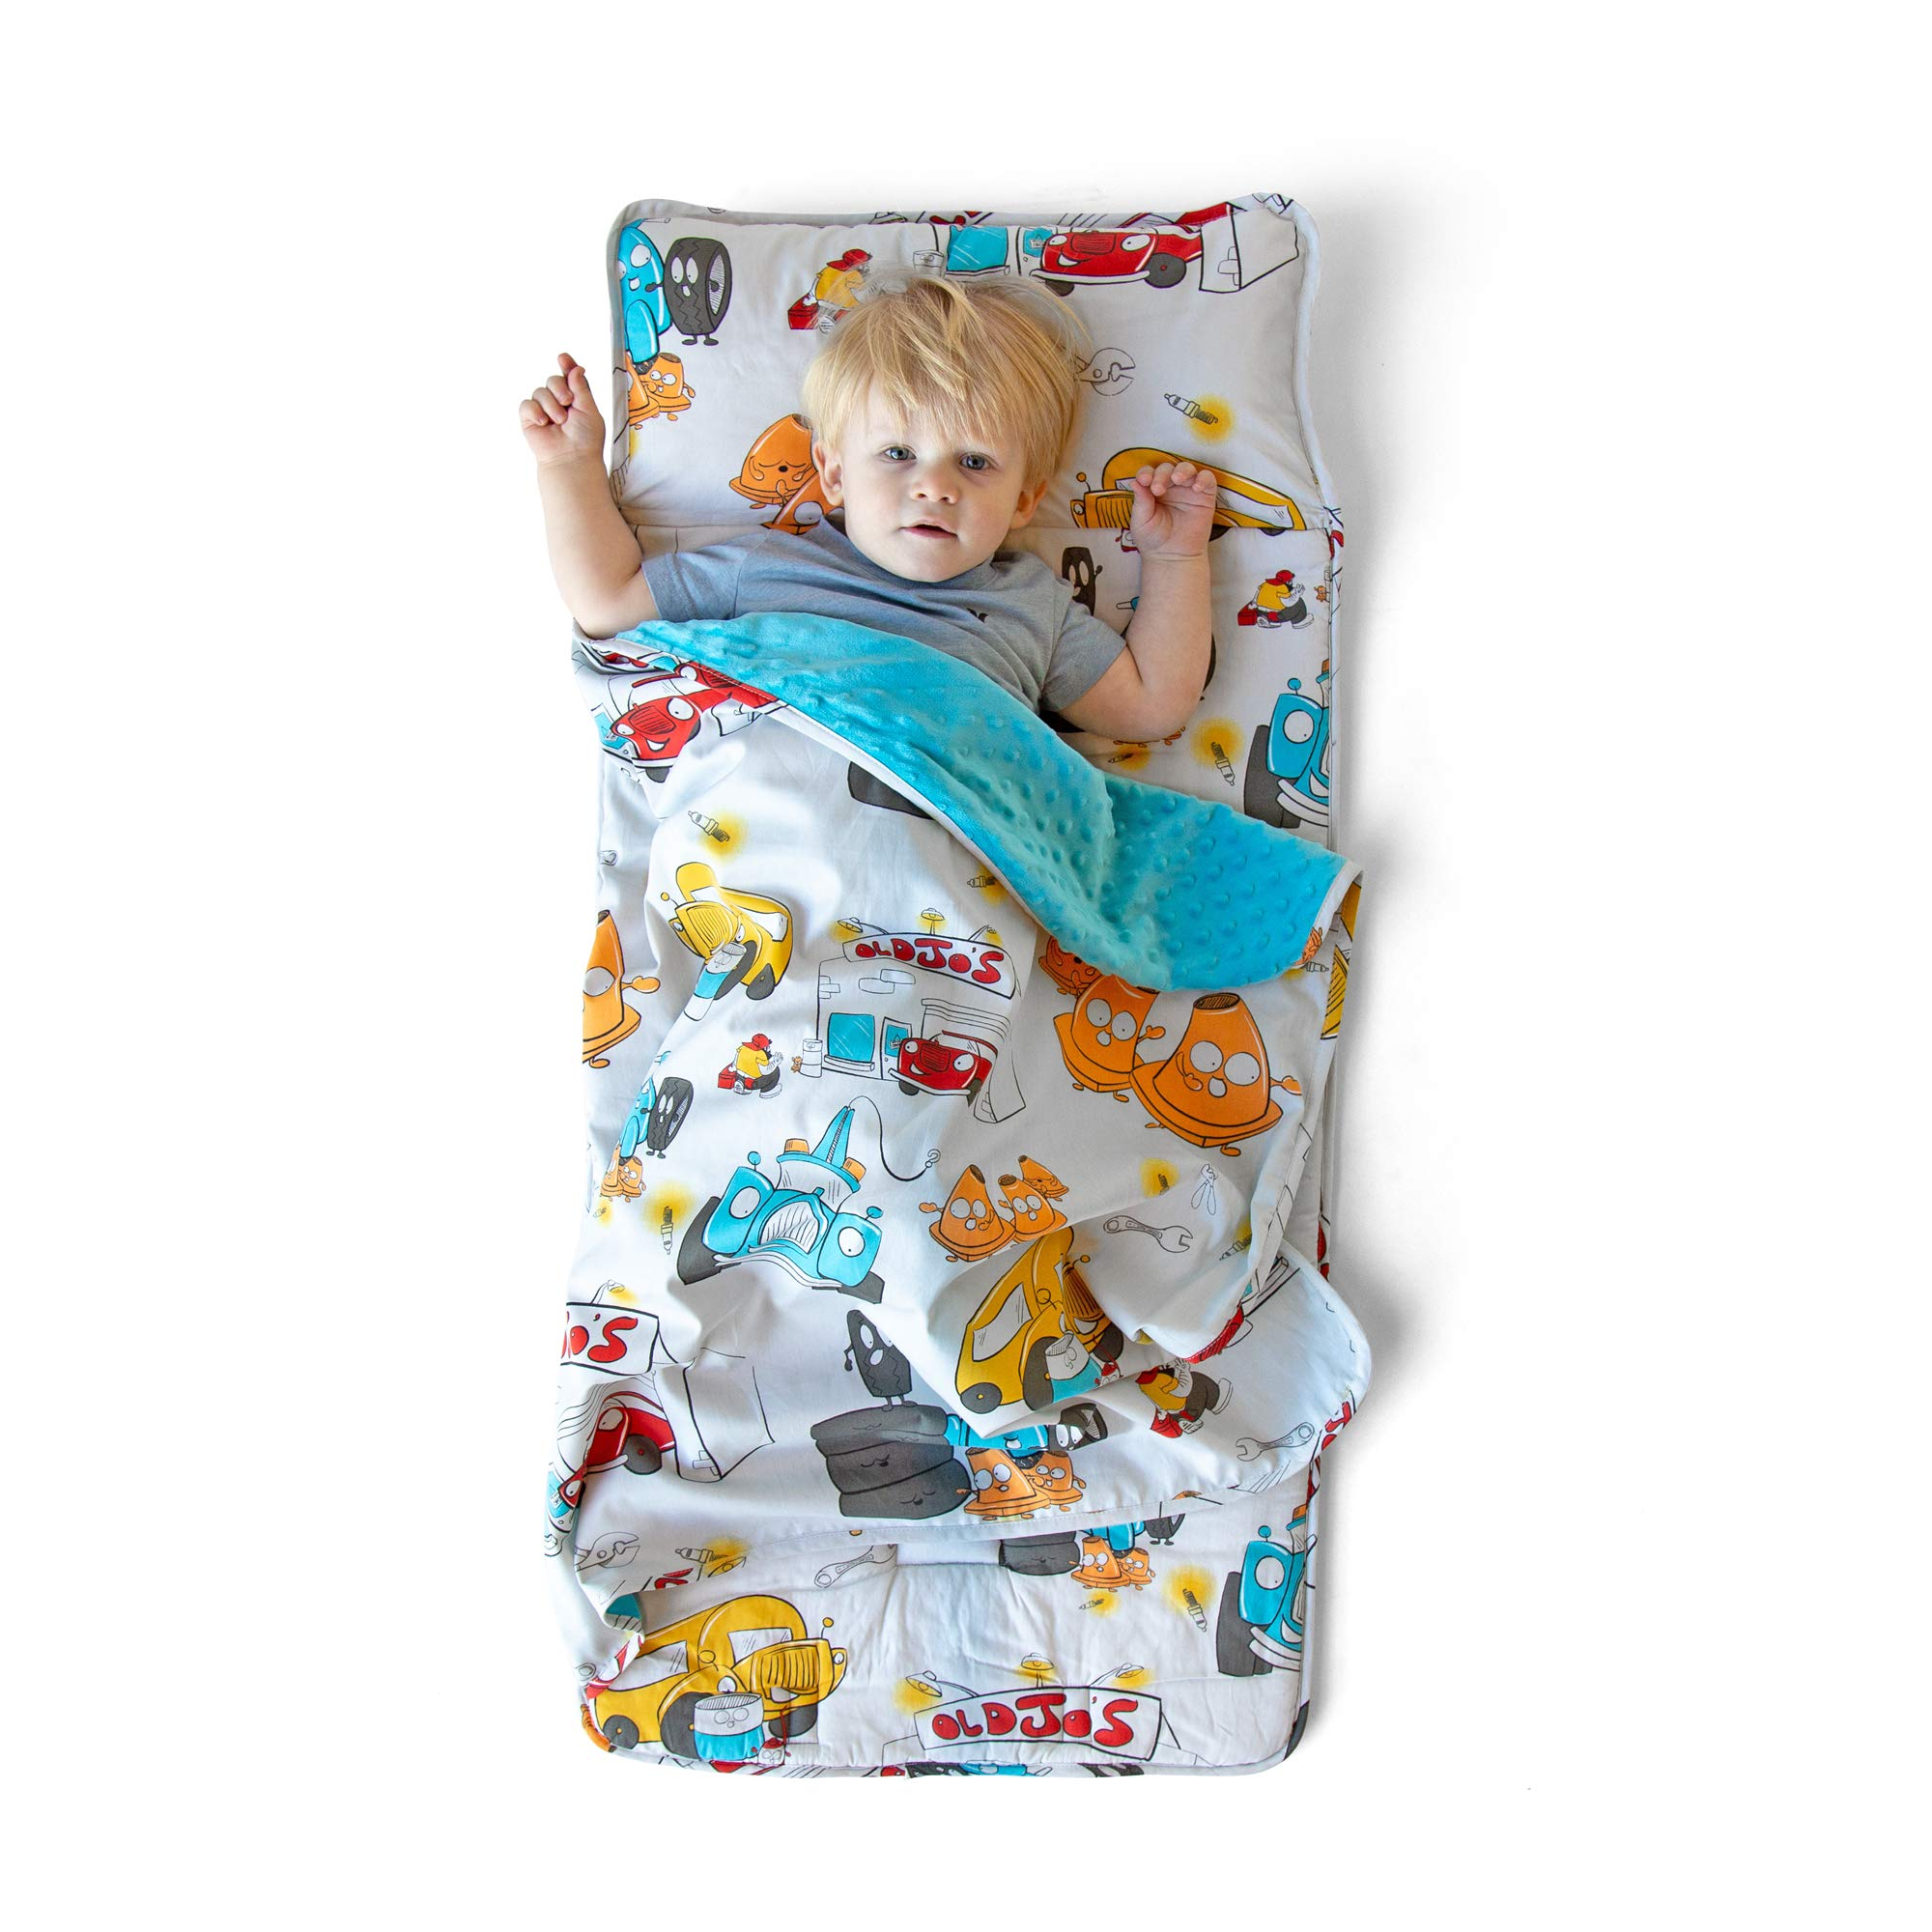 JumpOff Jo Toddler Nap Mat, Sleeping Bag for Preschool and Daycare, Jo's Garage, 43 x 21 Inches